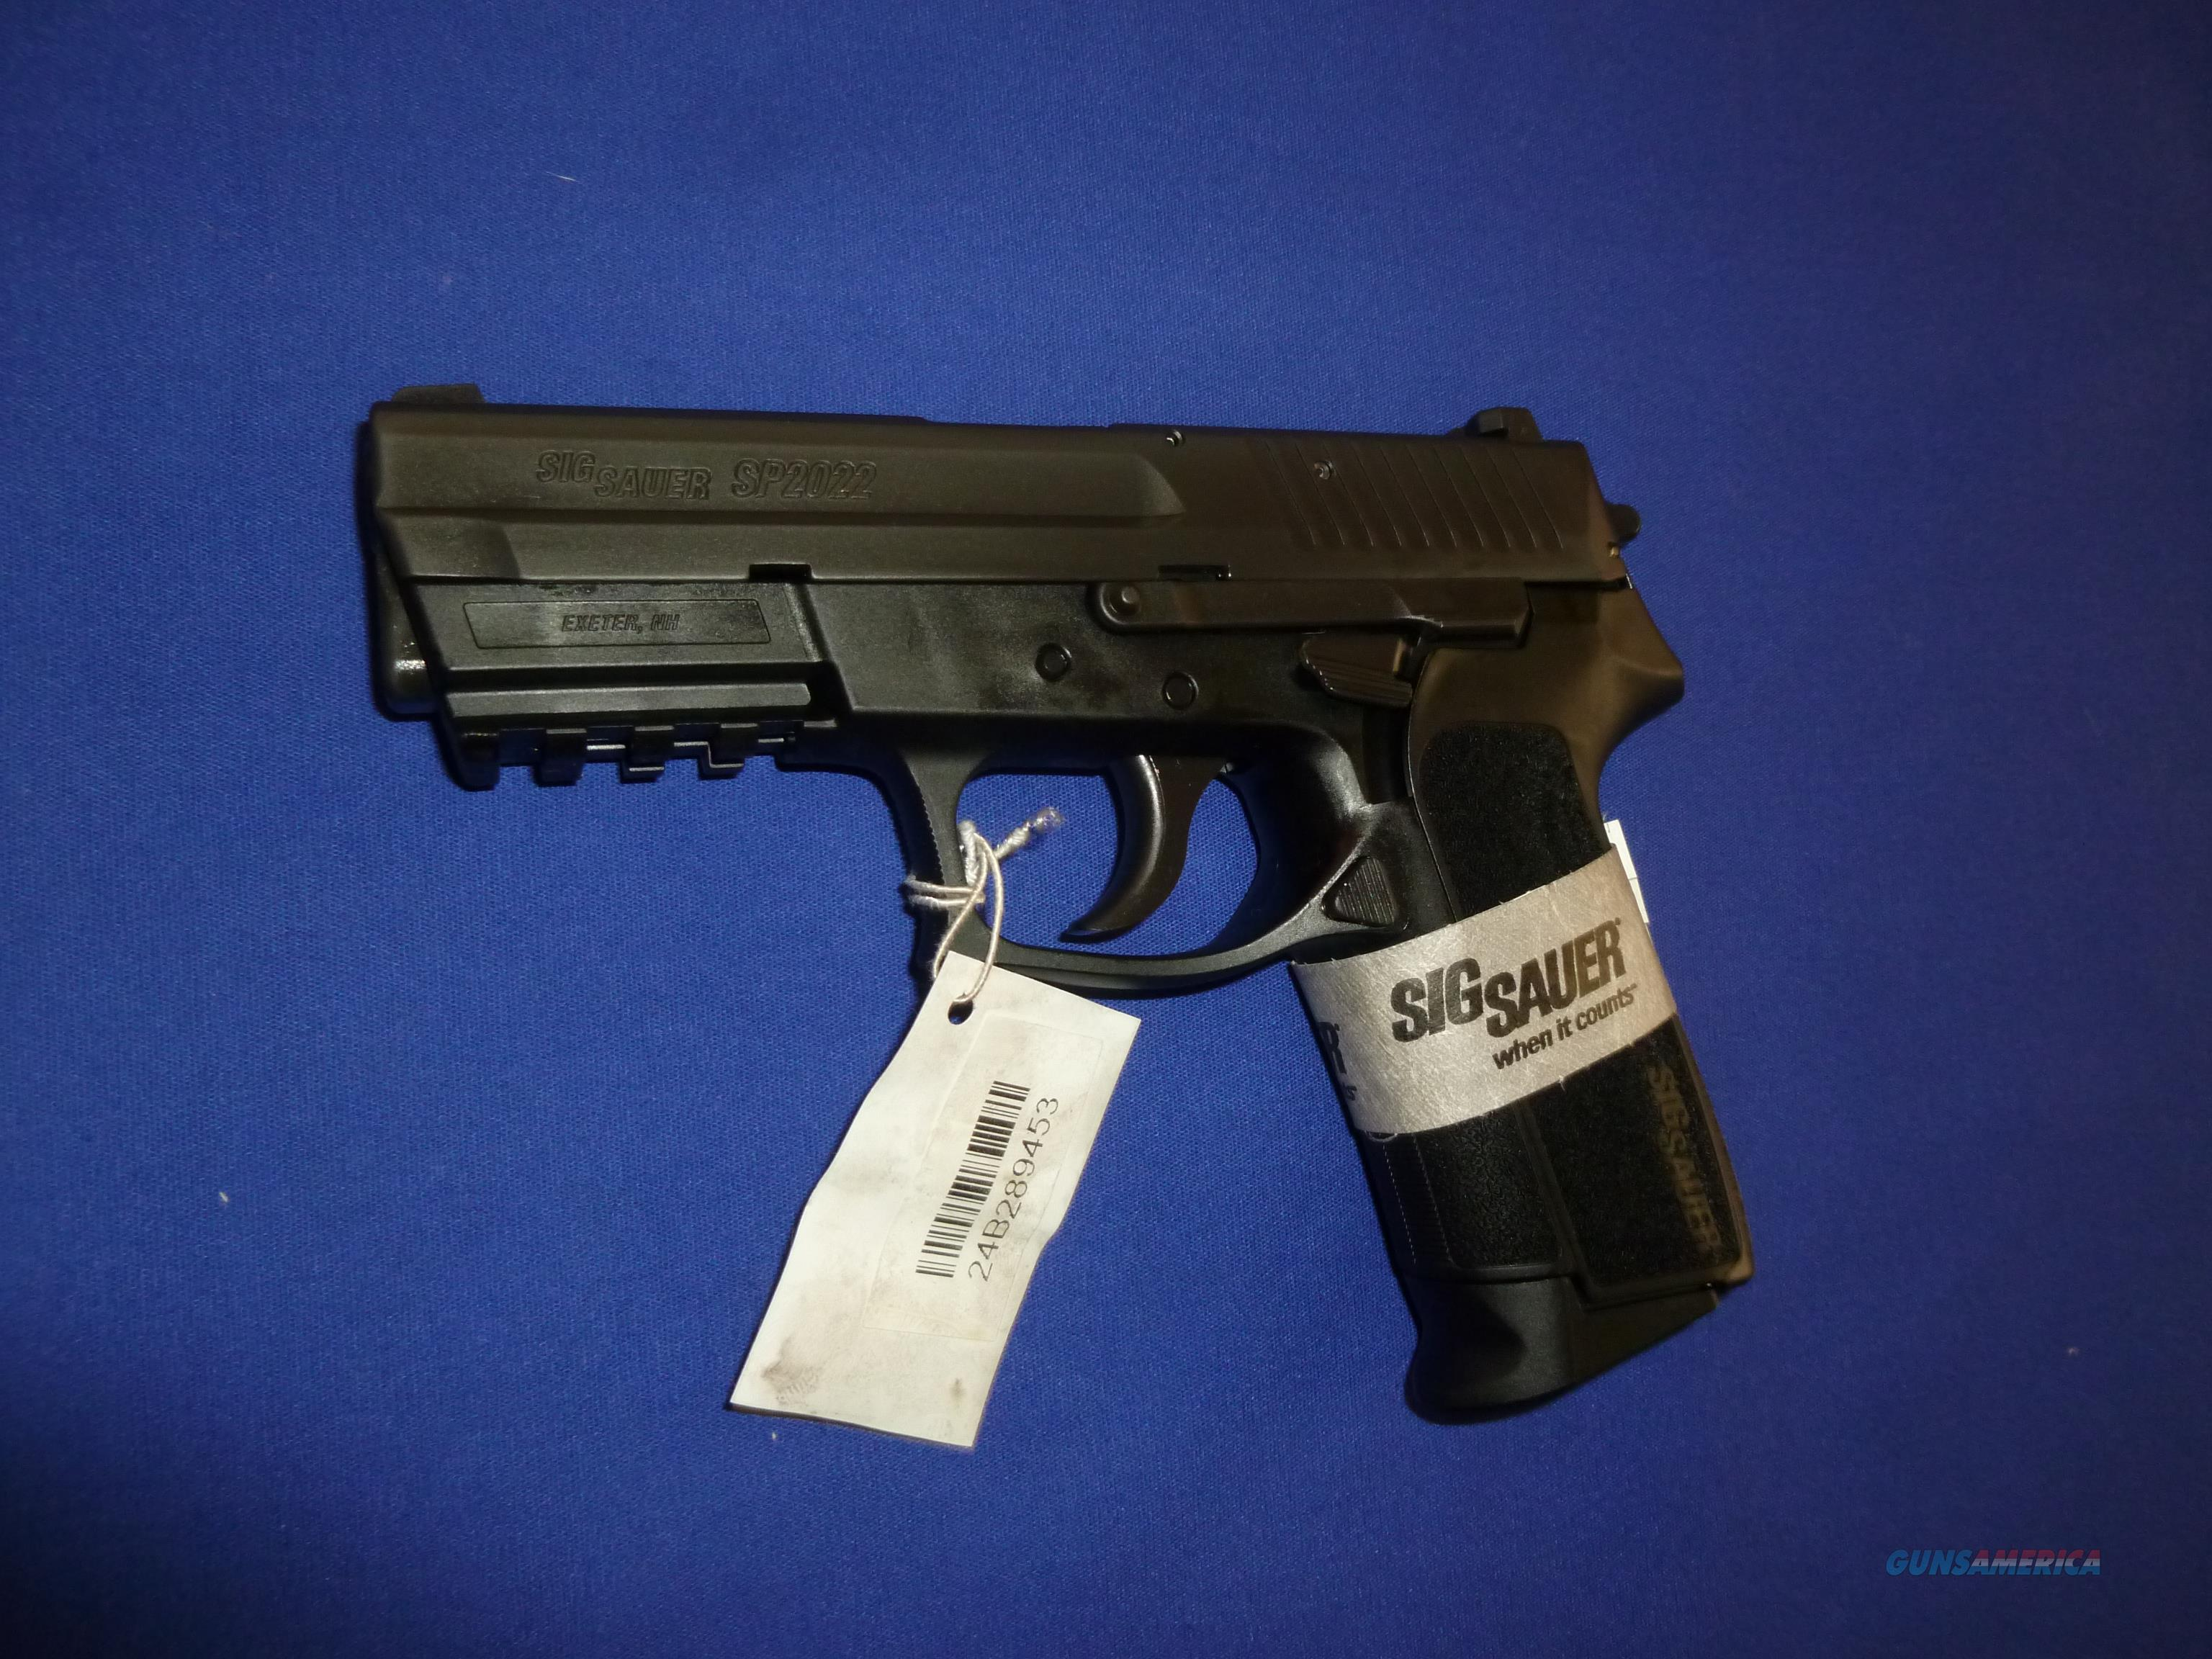 SIG SP2022 9MM PISTOL WITH CONTRAST SIGHTS